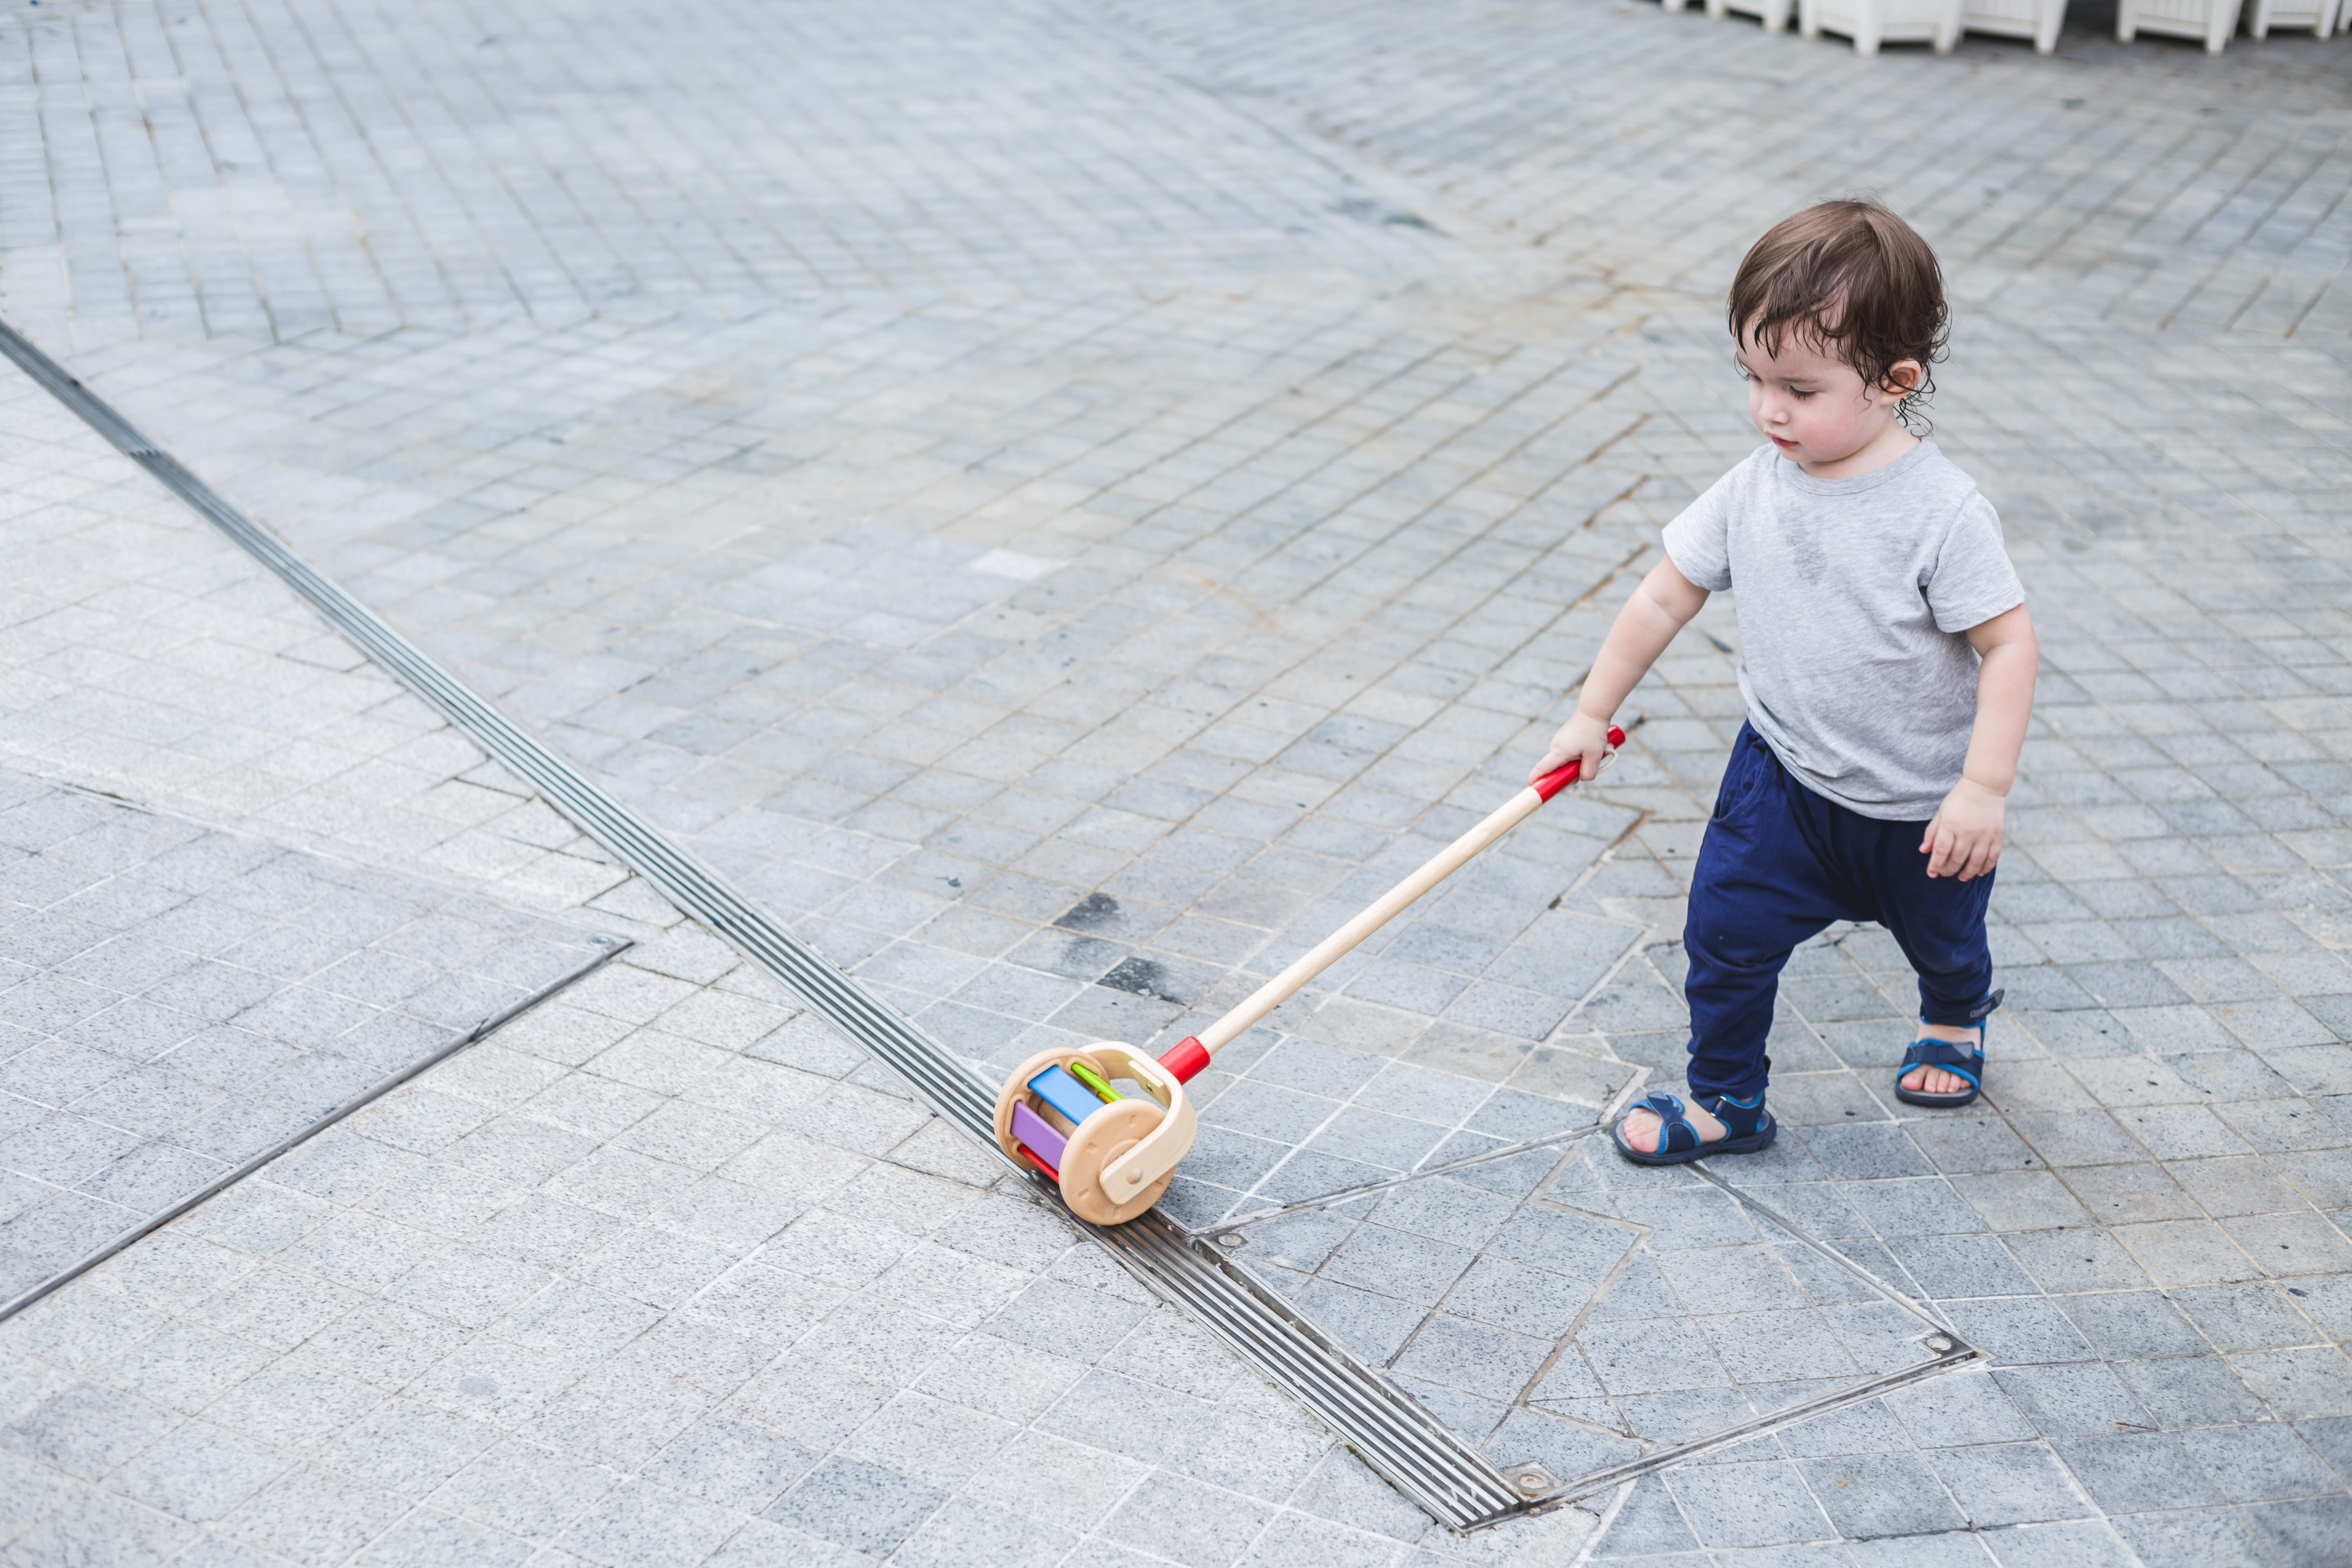 5137_PlanToys_WALK_N_ROLL_Push_and_Pull_Gross_Motor_Coordination_Cause_and_Effect_Auditory_12m_Wooden_toys_Education_toys_Safety_Toys_Non-toxic_2.jpg